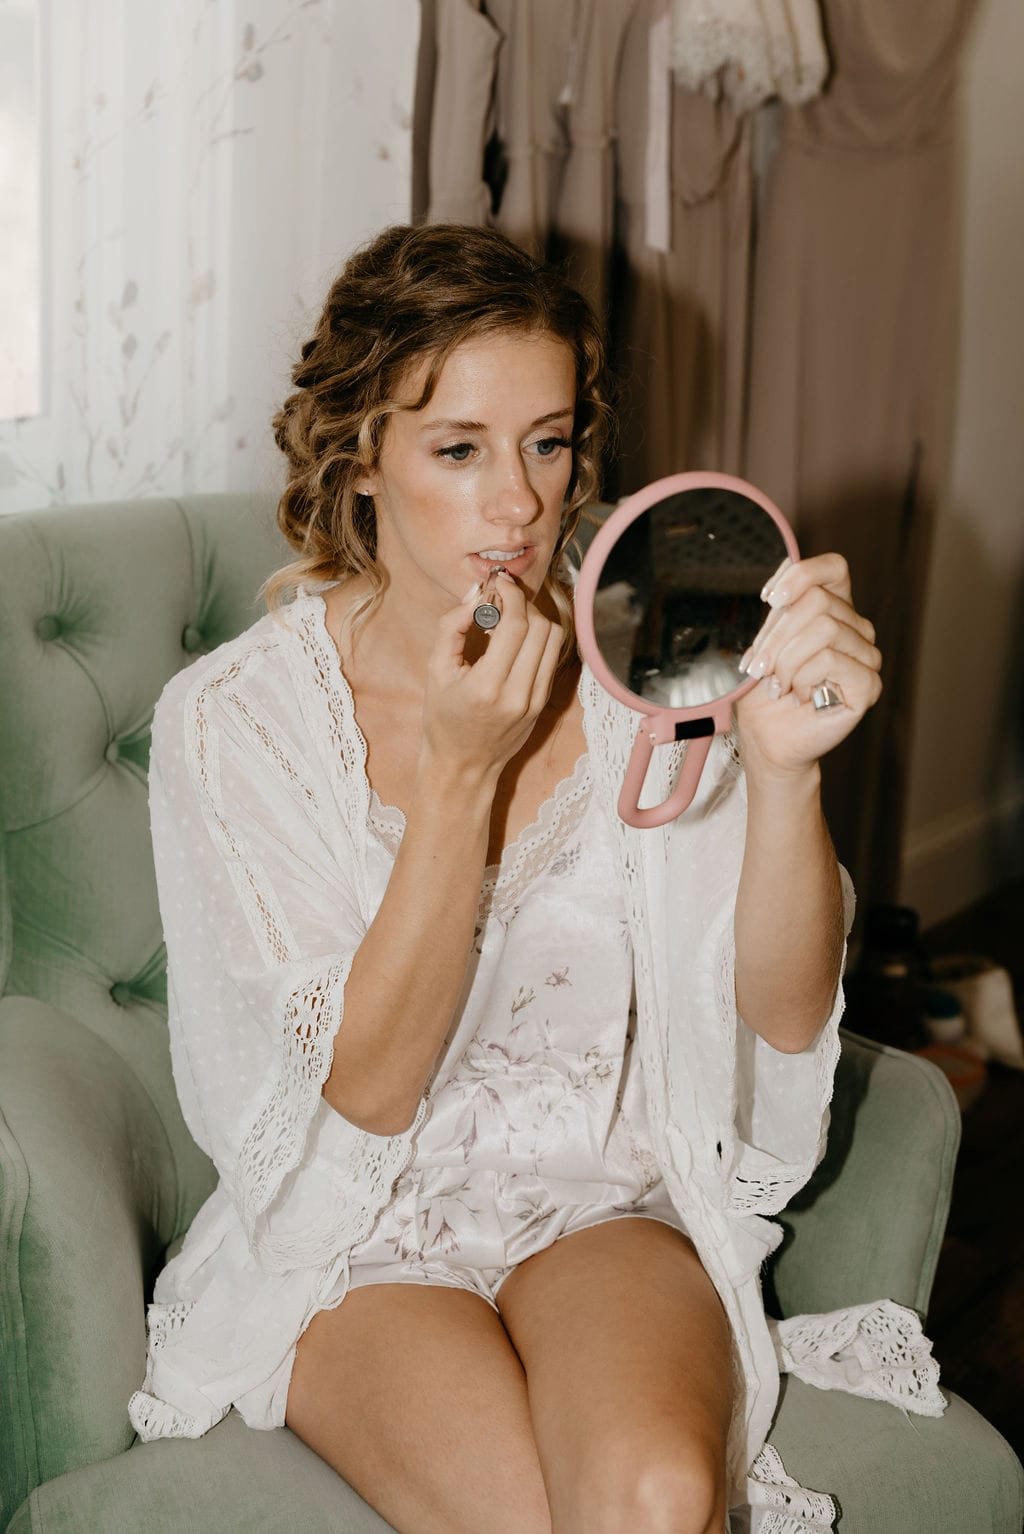 Vogue inspired getting ready photo of the bride at bonnie blues event venue